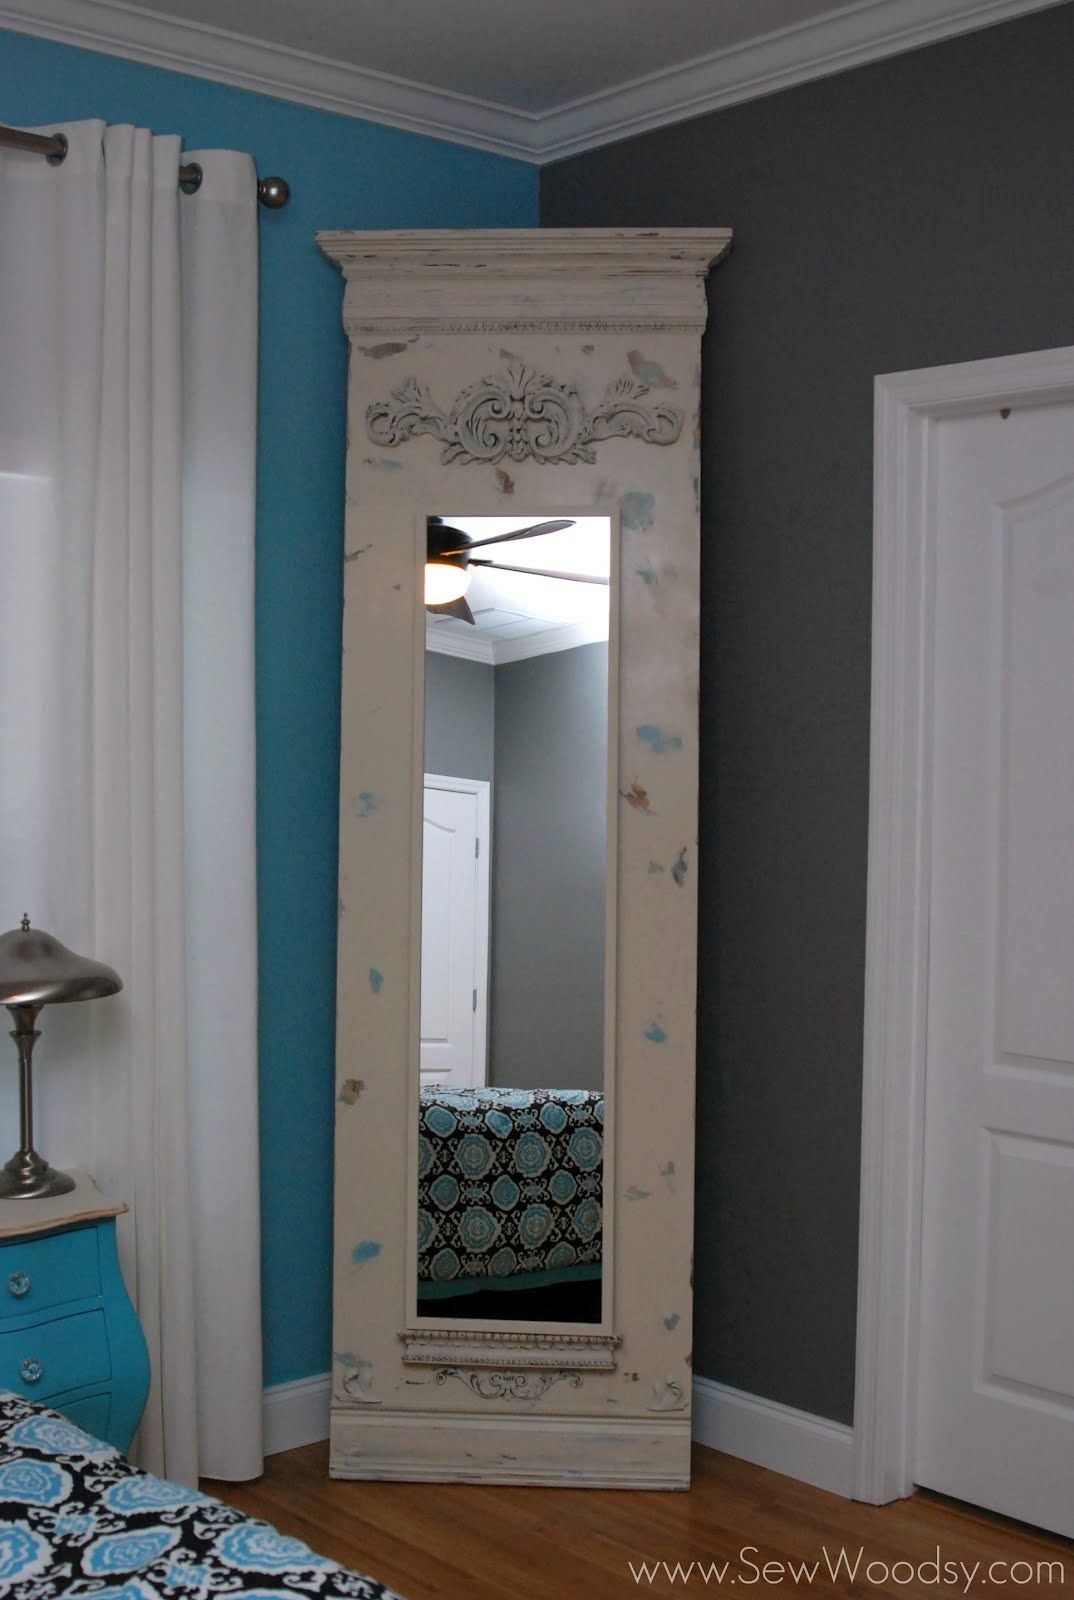 Transform A Basic Ikea STAVE Mirror From Blah To Amazing By - Beautiful diy ikea mirrors hacks to try